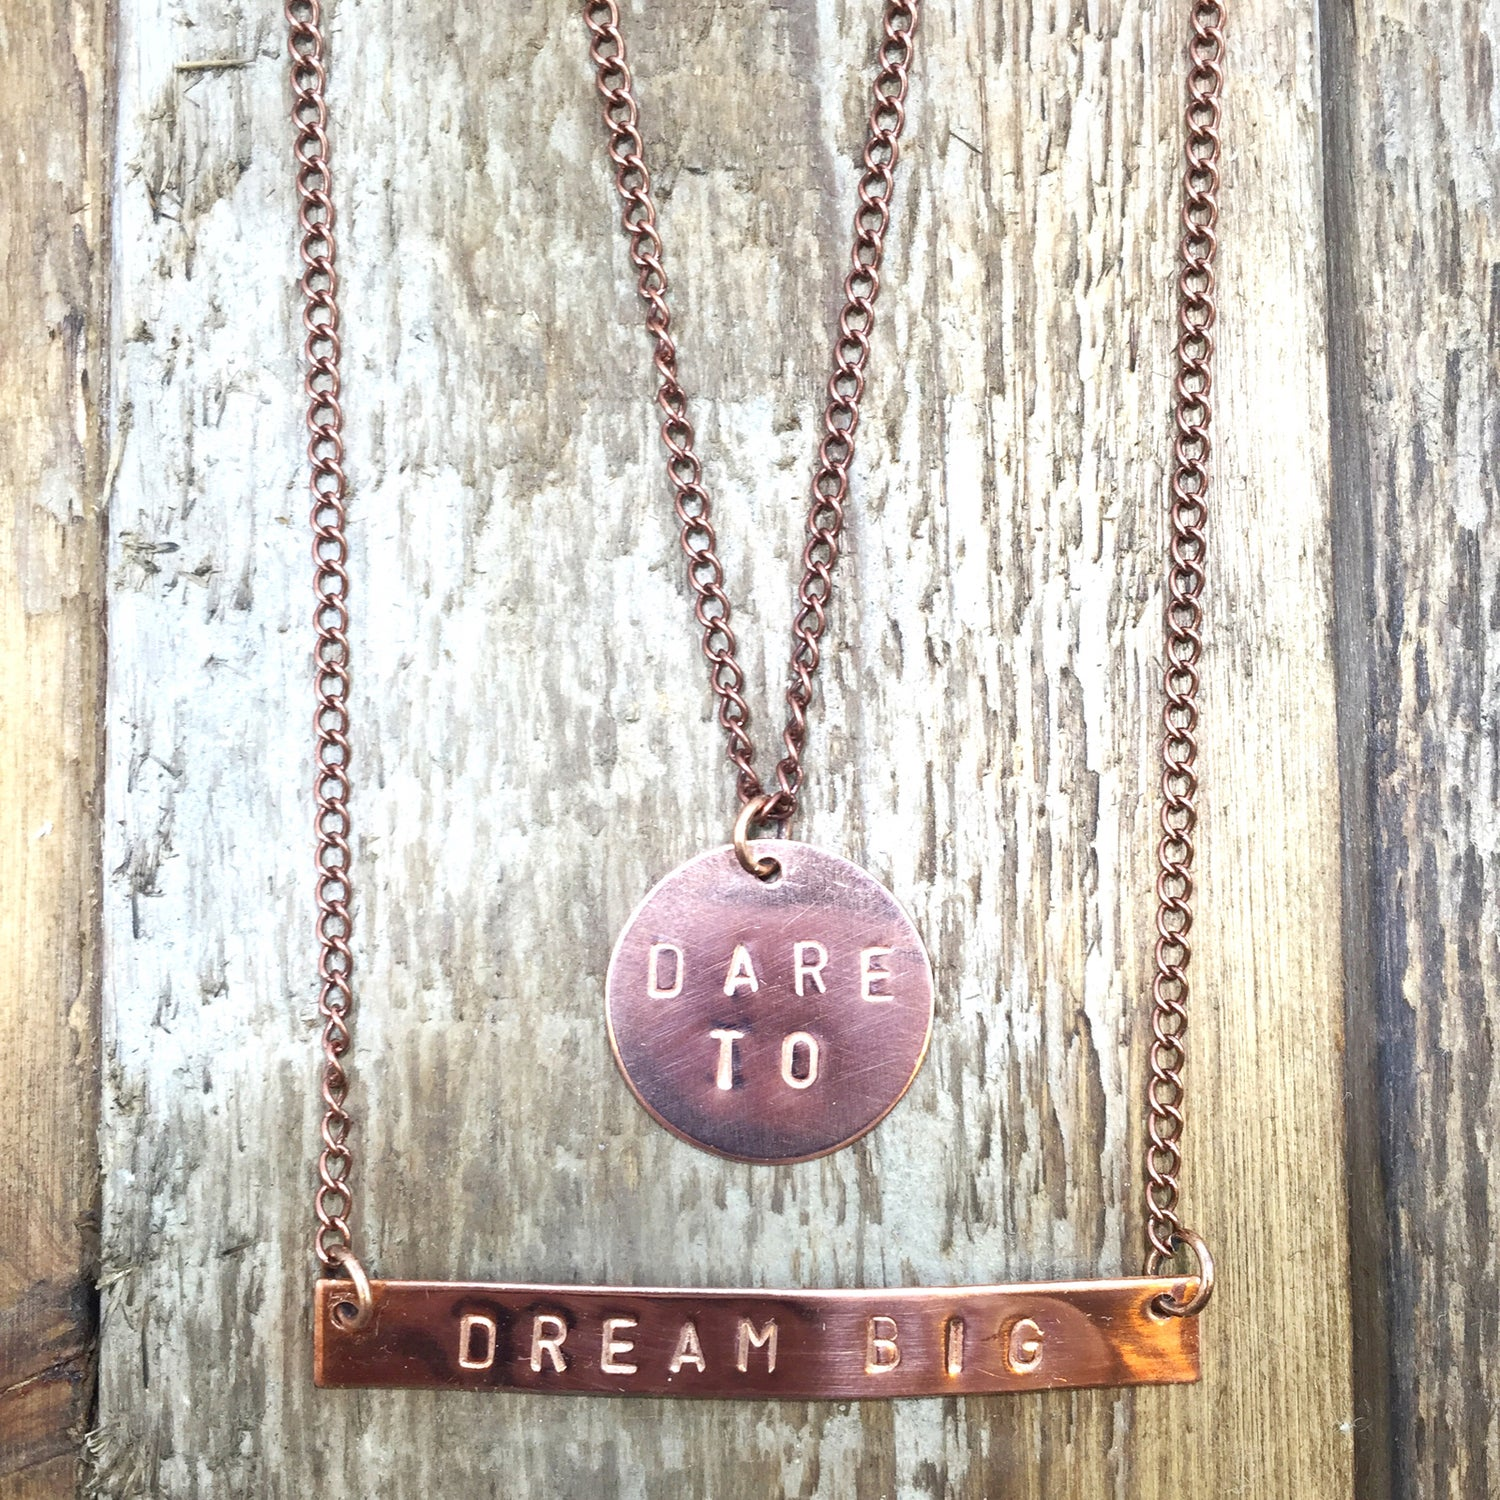 Image of Dare to Dream Big Necklace